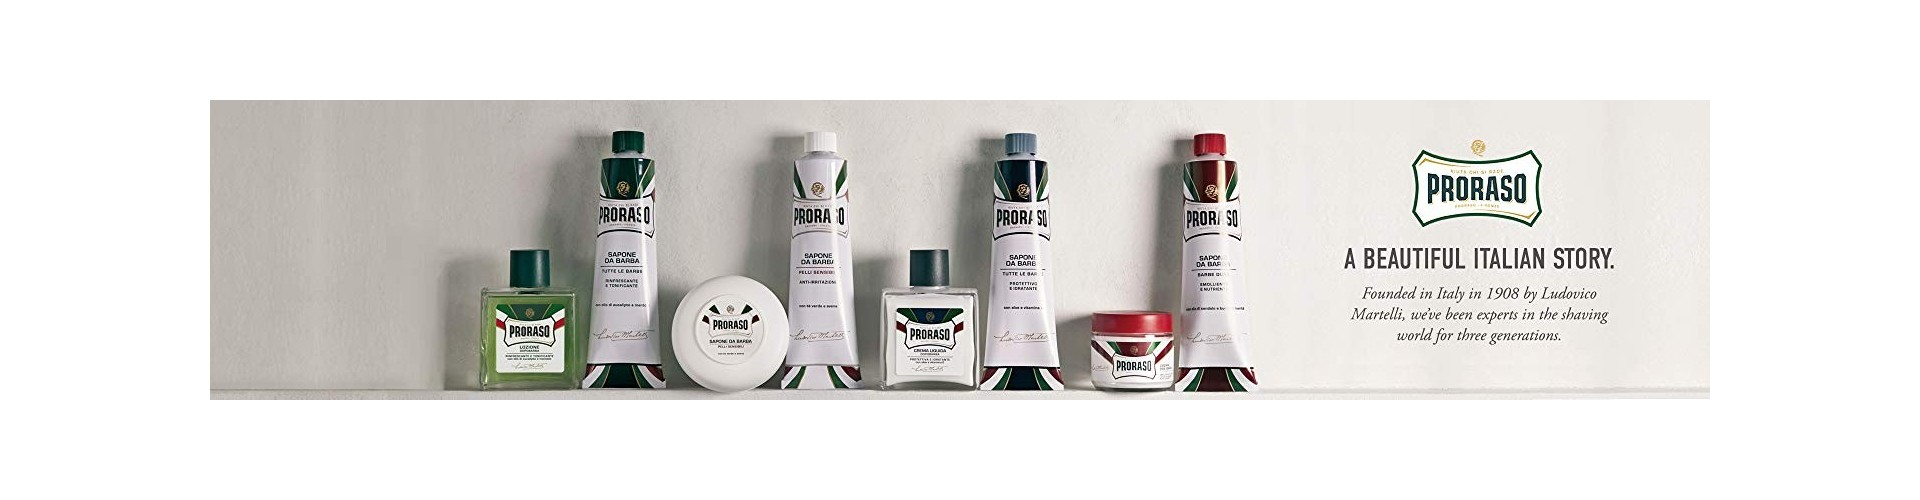 HAIRSHOP.lu #shoplocal - Proraso at the best price